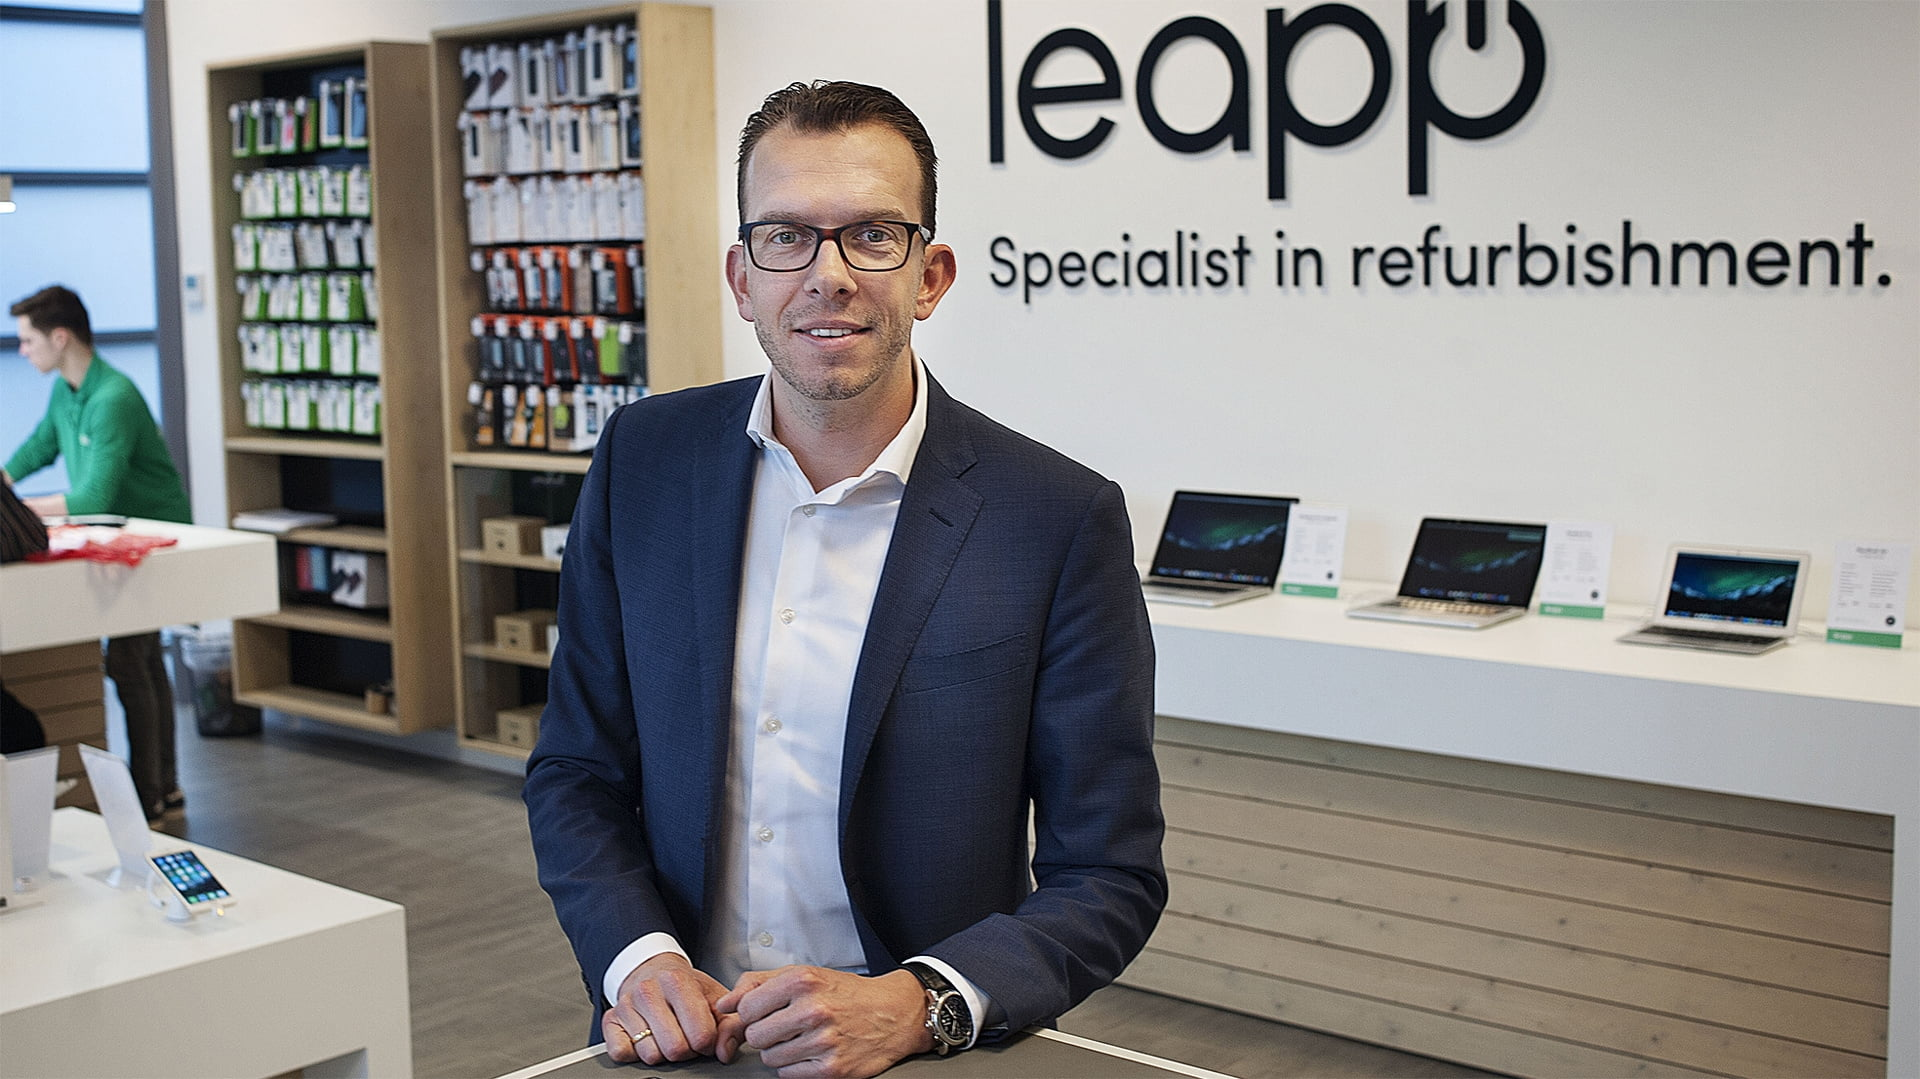 Retailer Leapp files bankruptcy: 4 other notable Dutch startups that went bankrupt recently